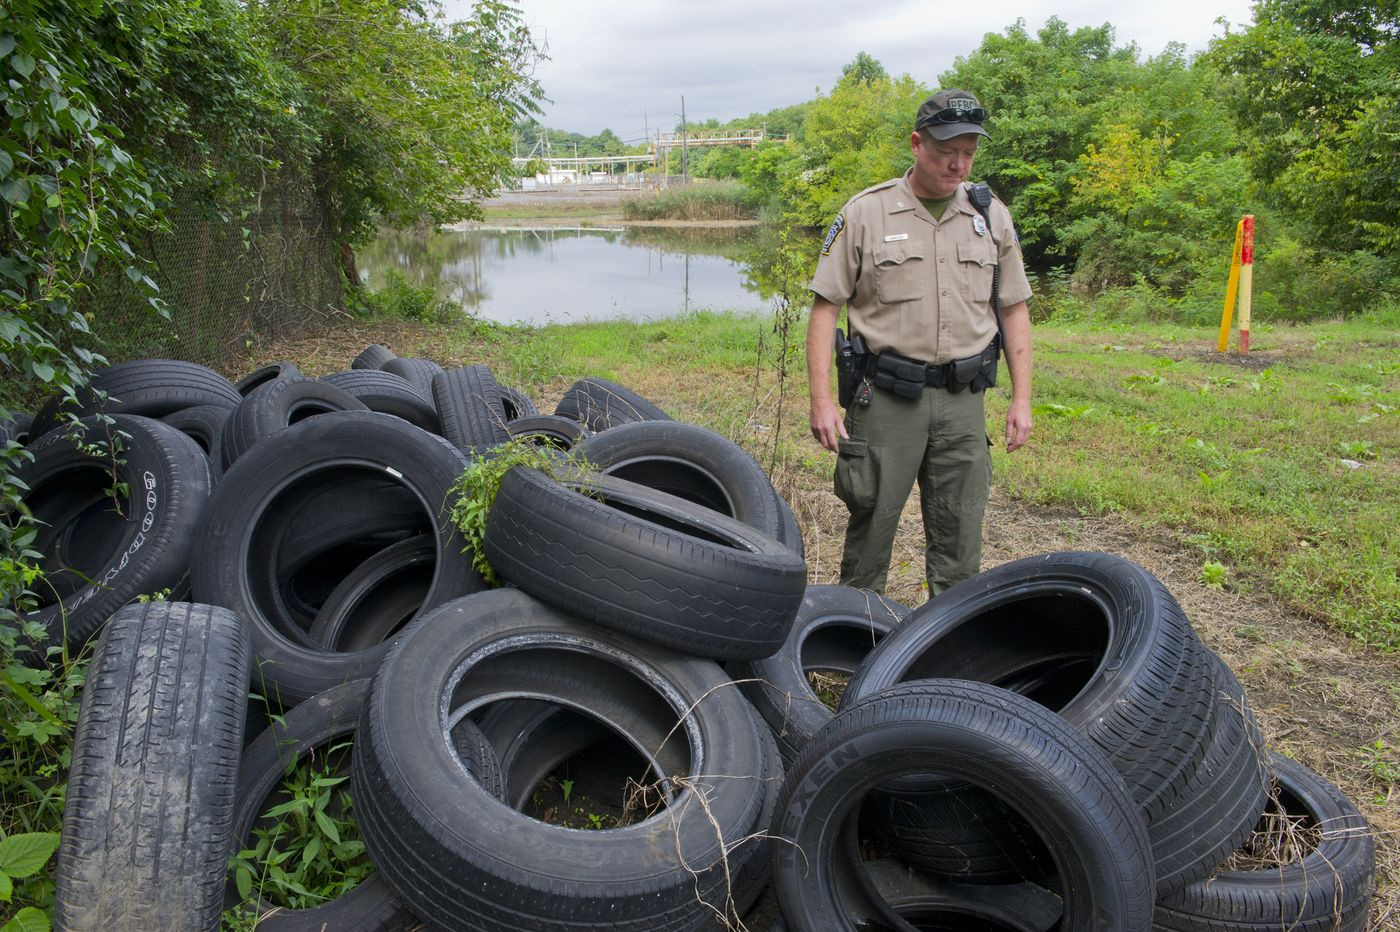 PA. Fish and Boat Commission Officer Nathan Hancock inspects an illegal dump of tires in a tributary of the Schuylkill River in South Philadelphia on September 20, 2018.